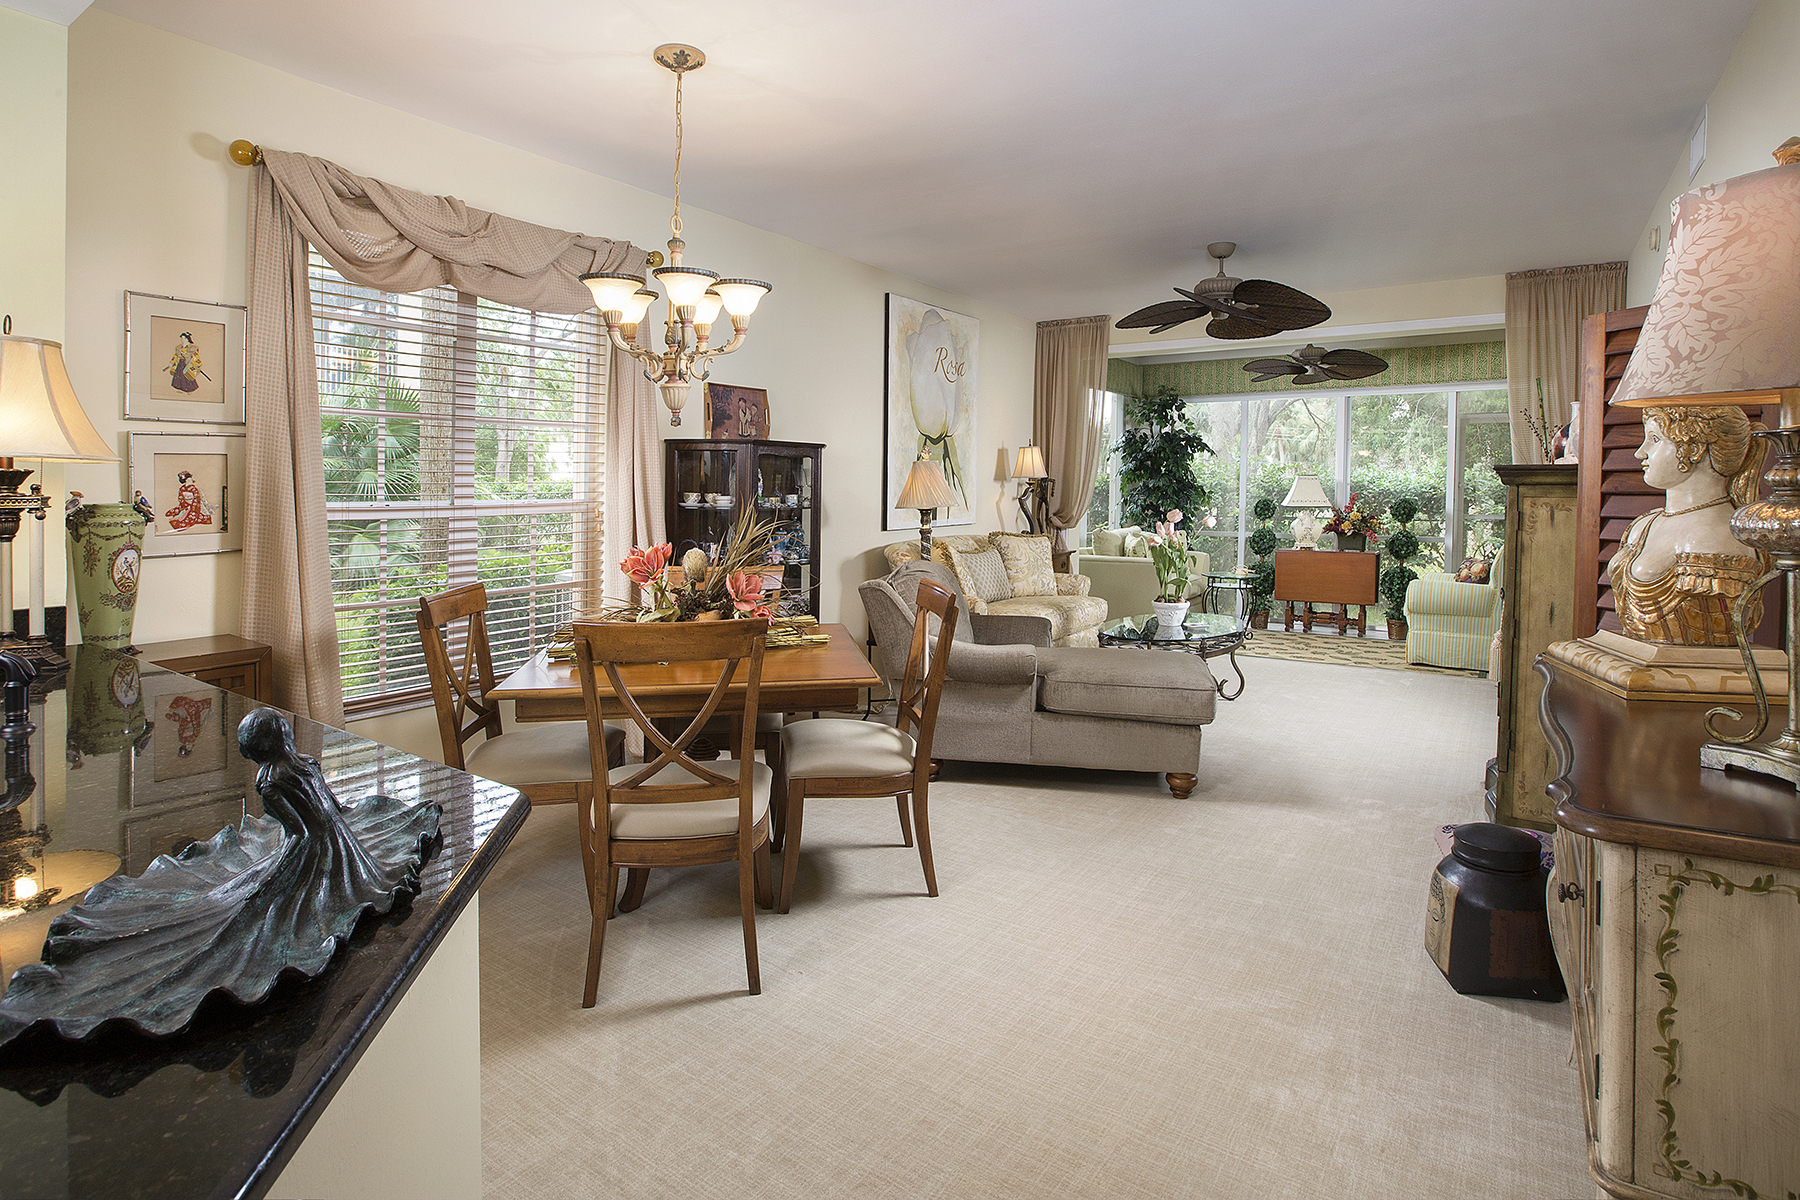 Condominium for Sale at WIGGINS LAKES AND PRESERVES 683 Wiggins Lake Dr 101, Naples, Florida, 34110 United States